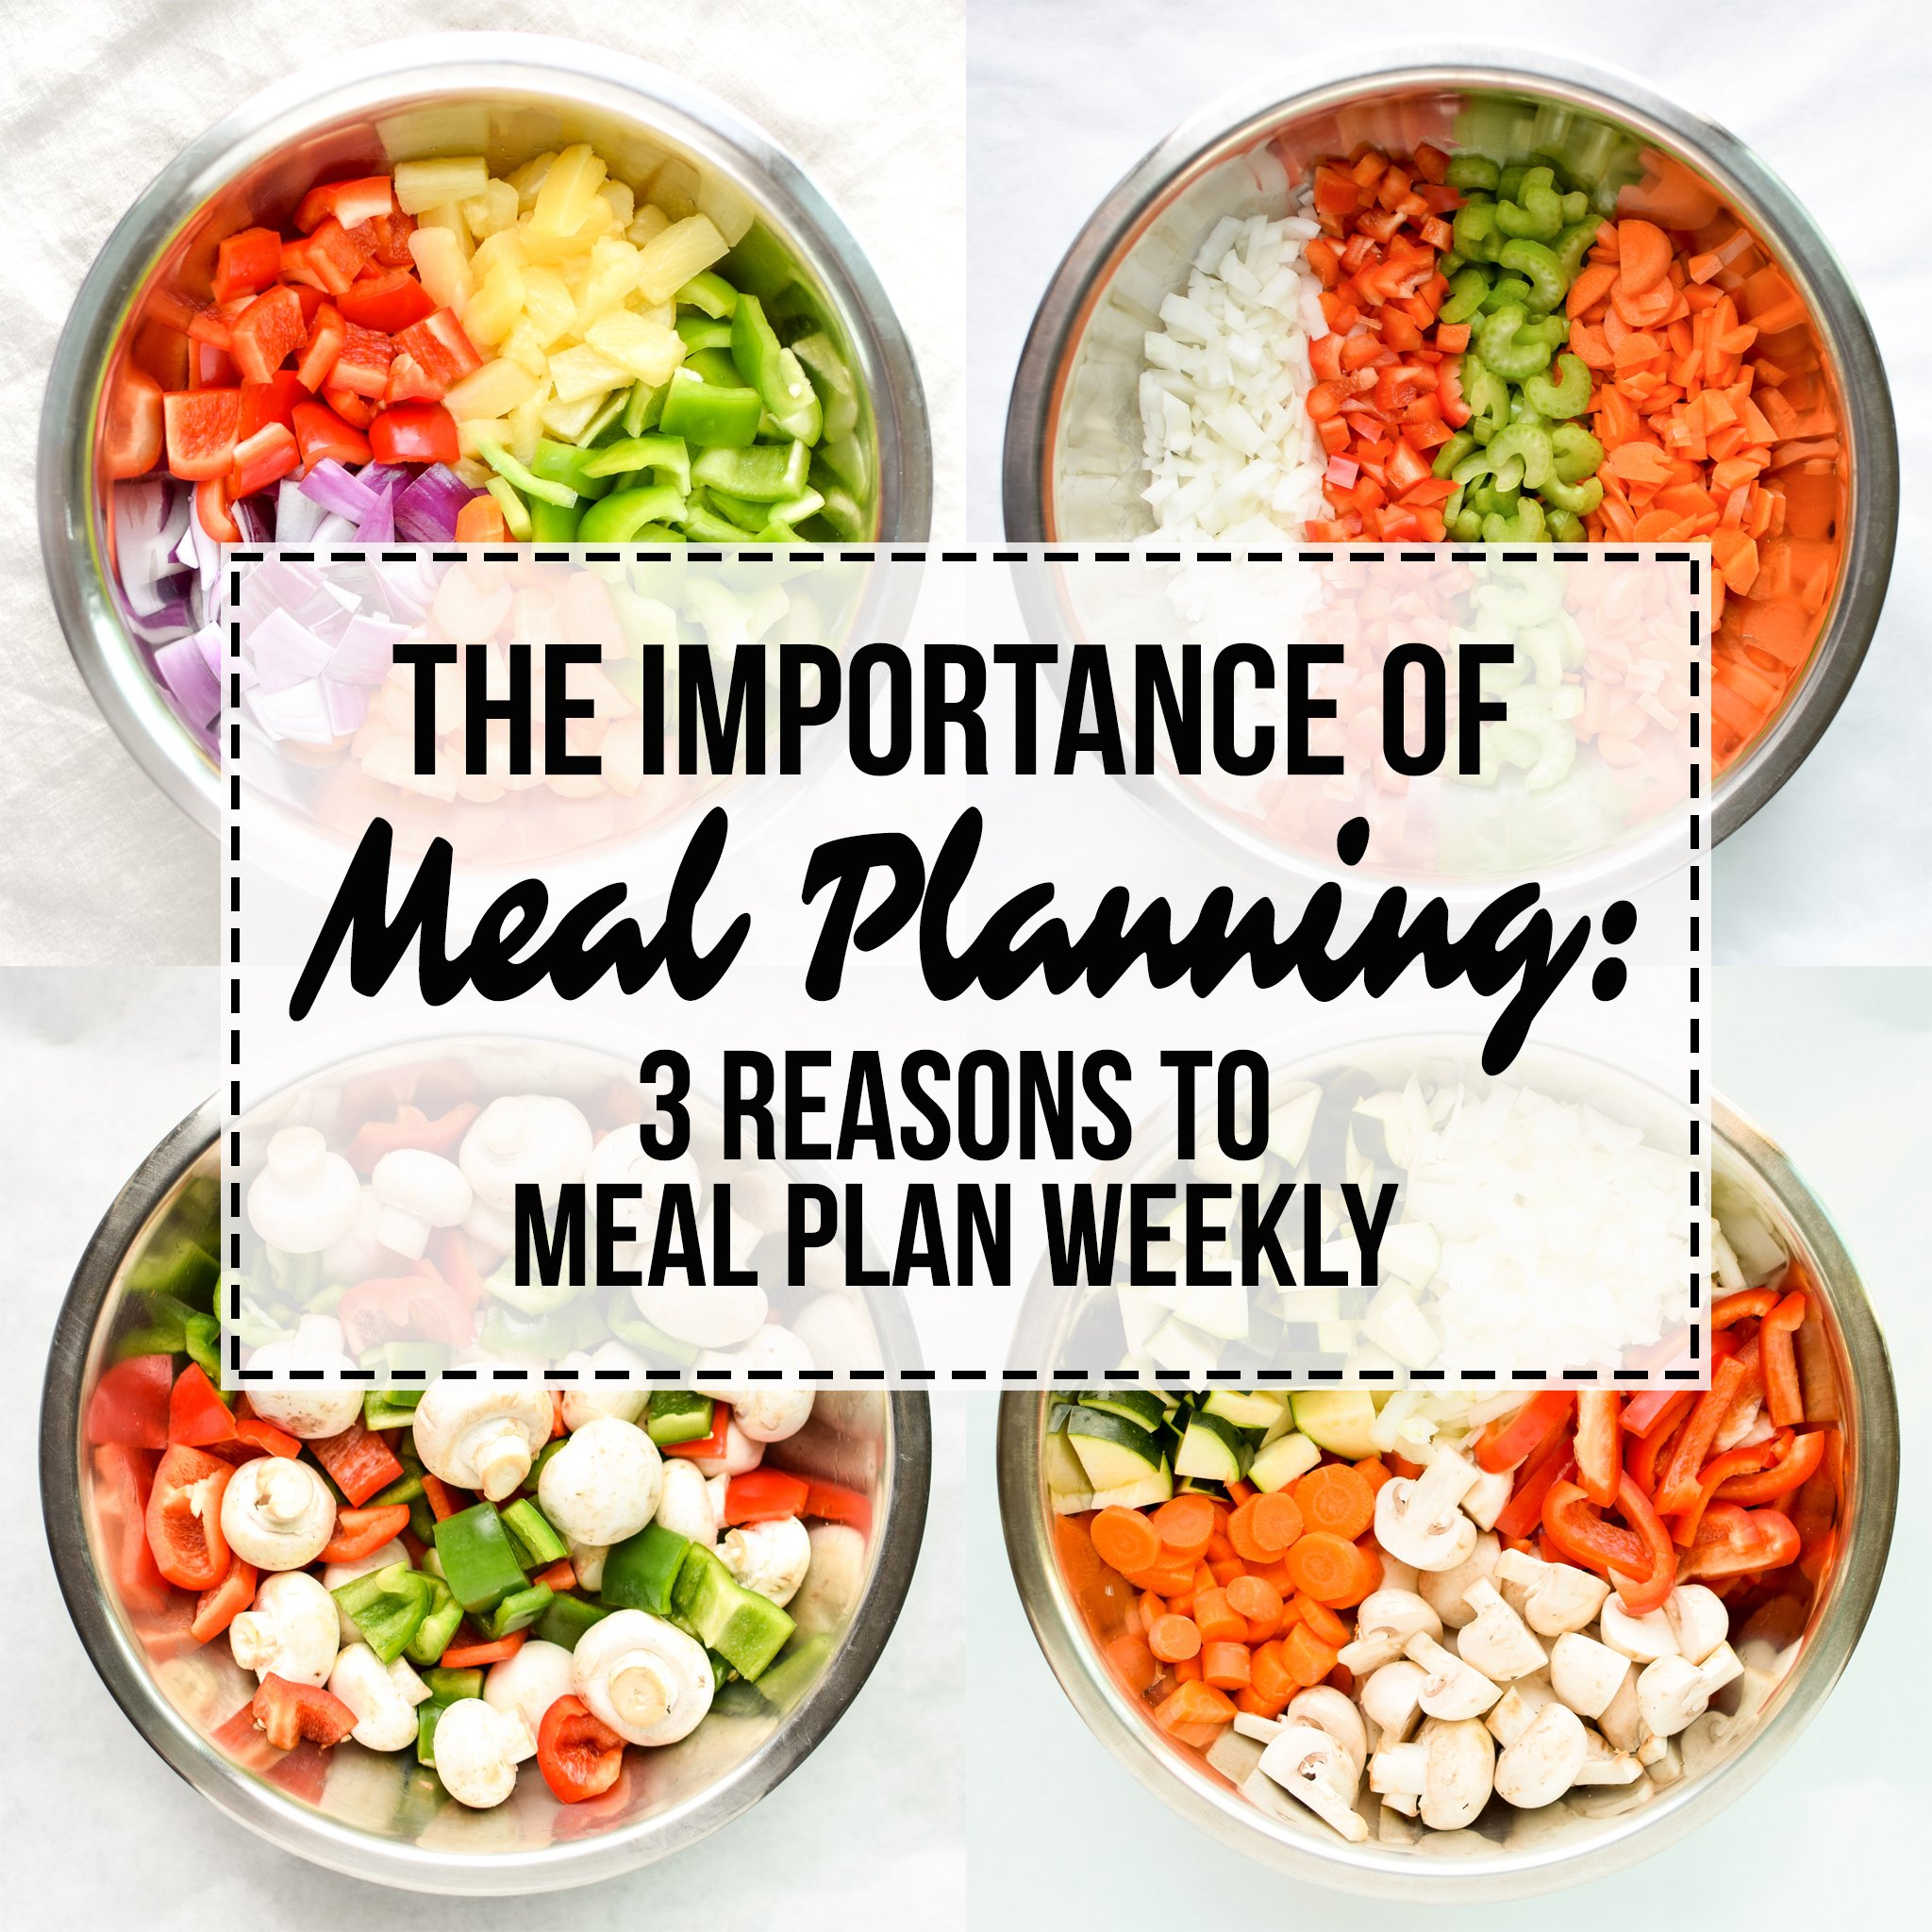 The Importance of Meal Planning: 3 Reasons to Meal Plan Weekly - It's all about that time, money, and our health of course! Here's a few good arguments for meal planning from ProjectMealPlan.com